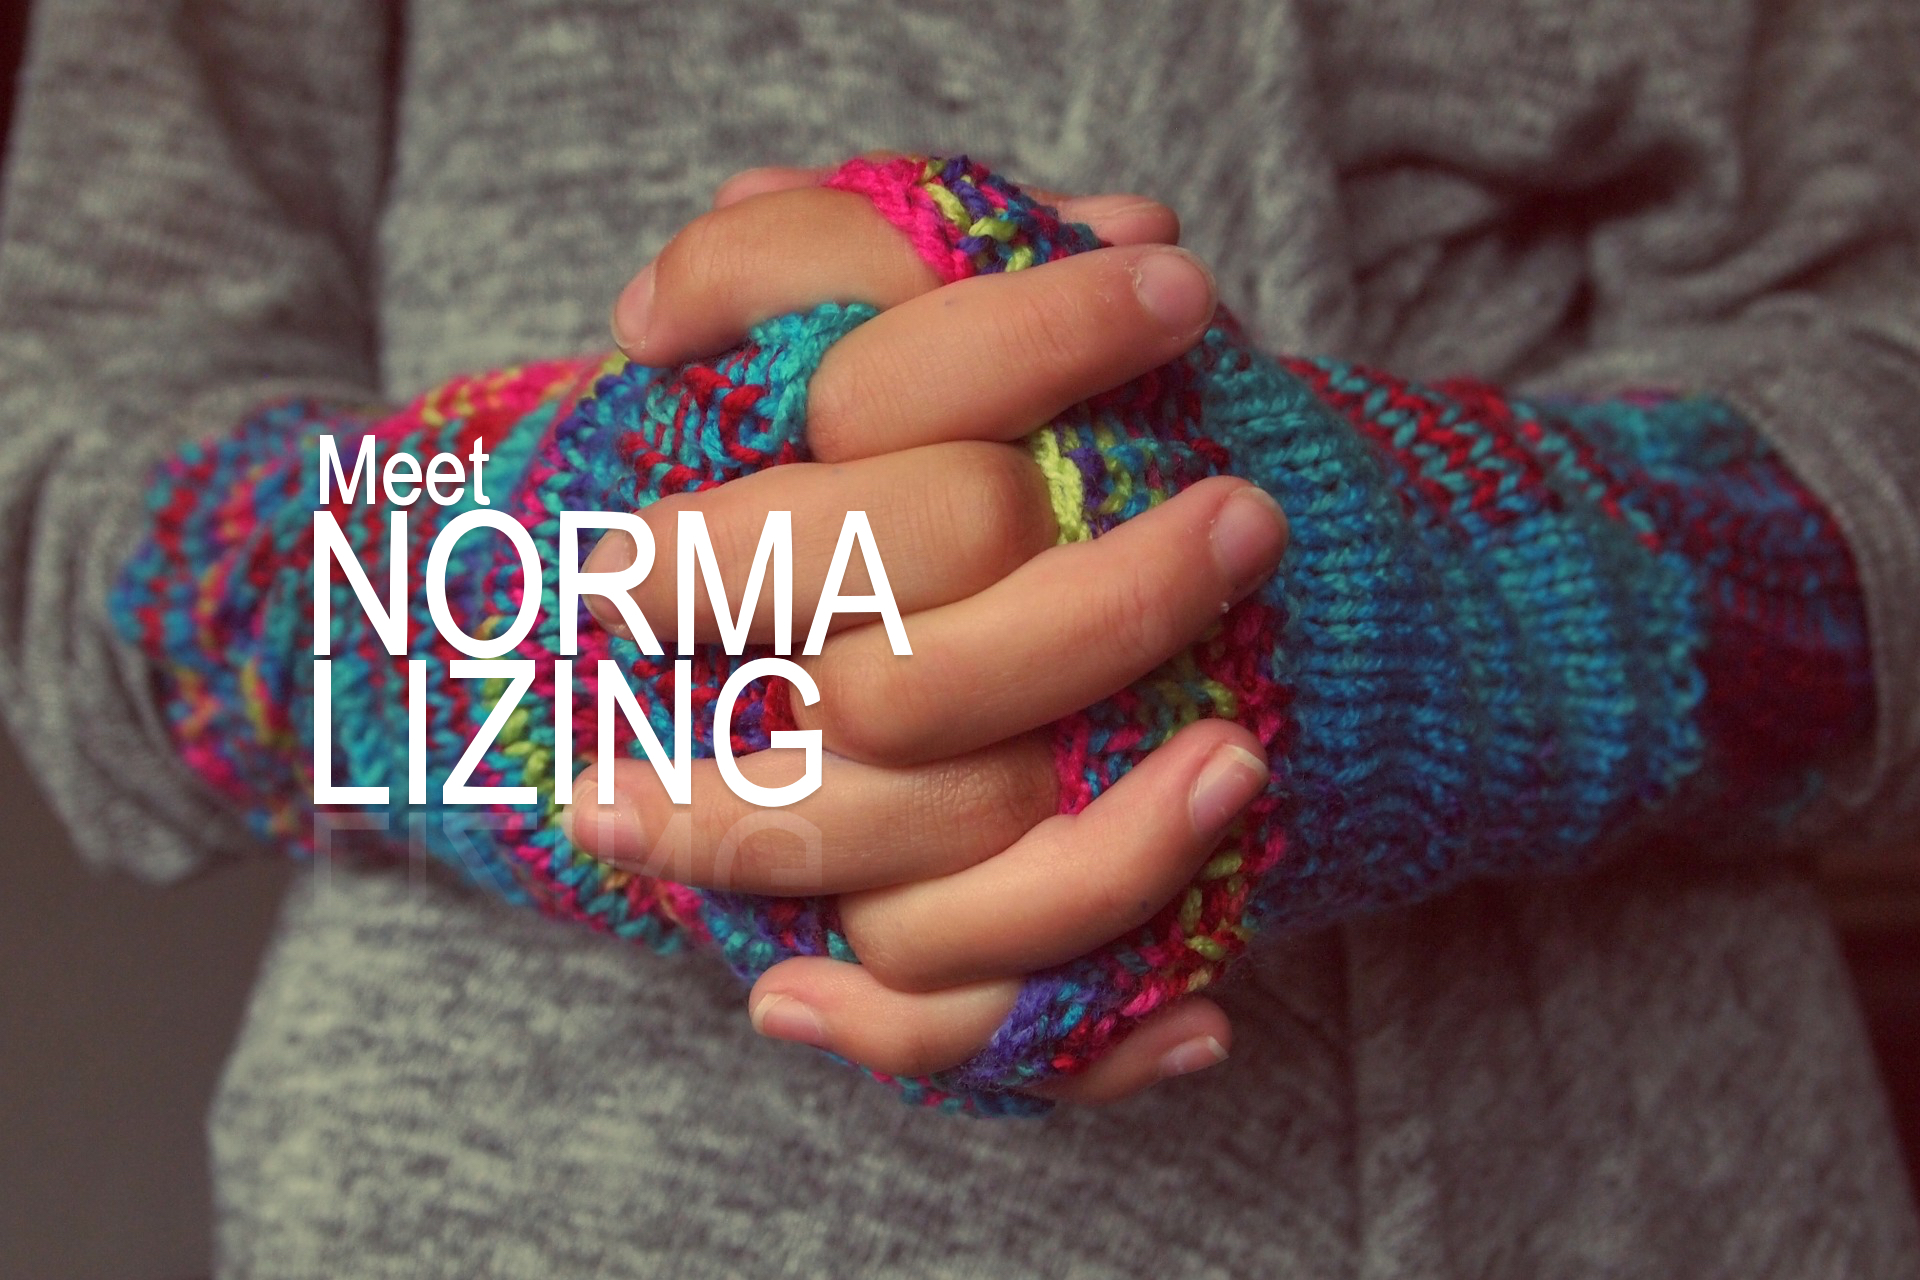 Meet Norma Lizing